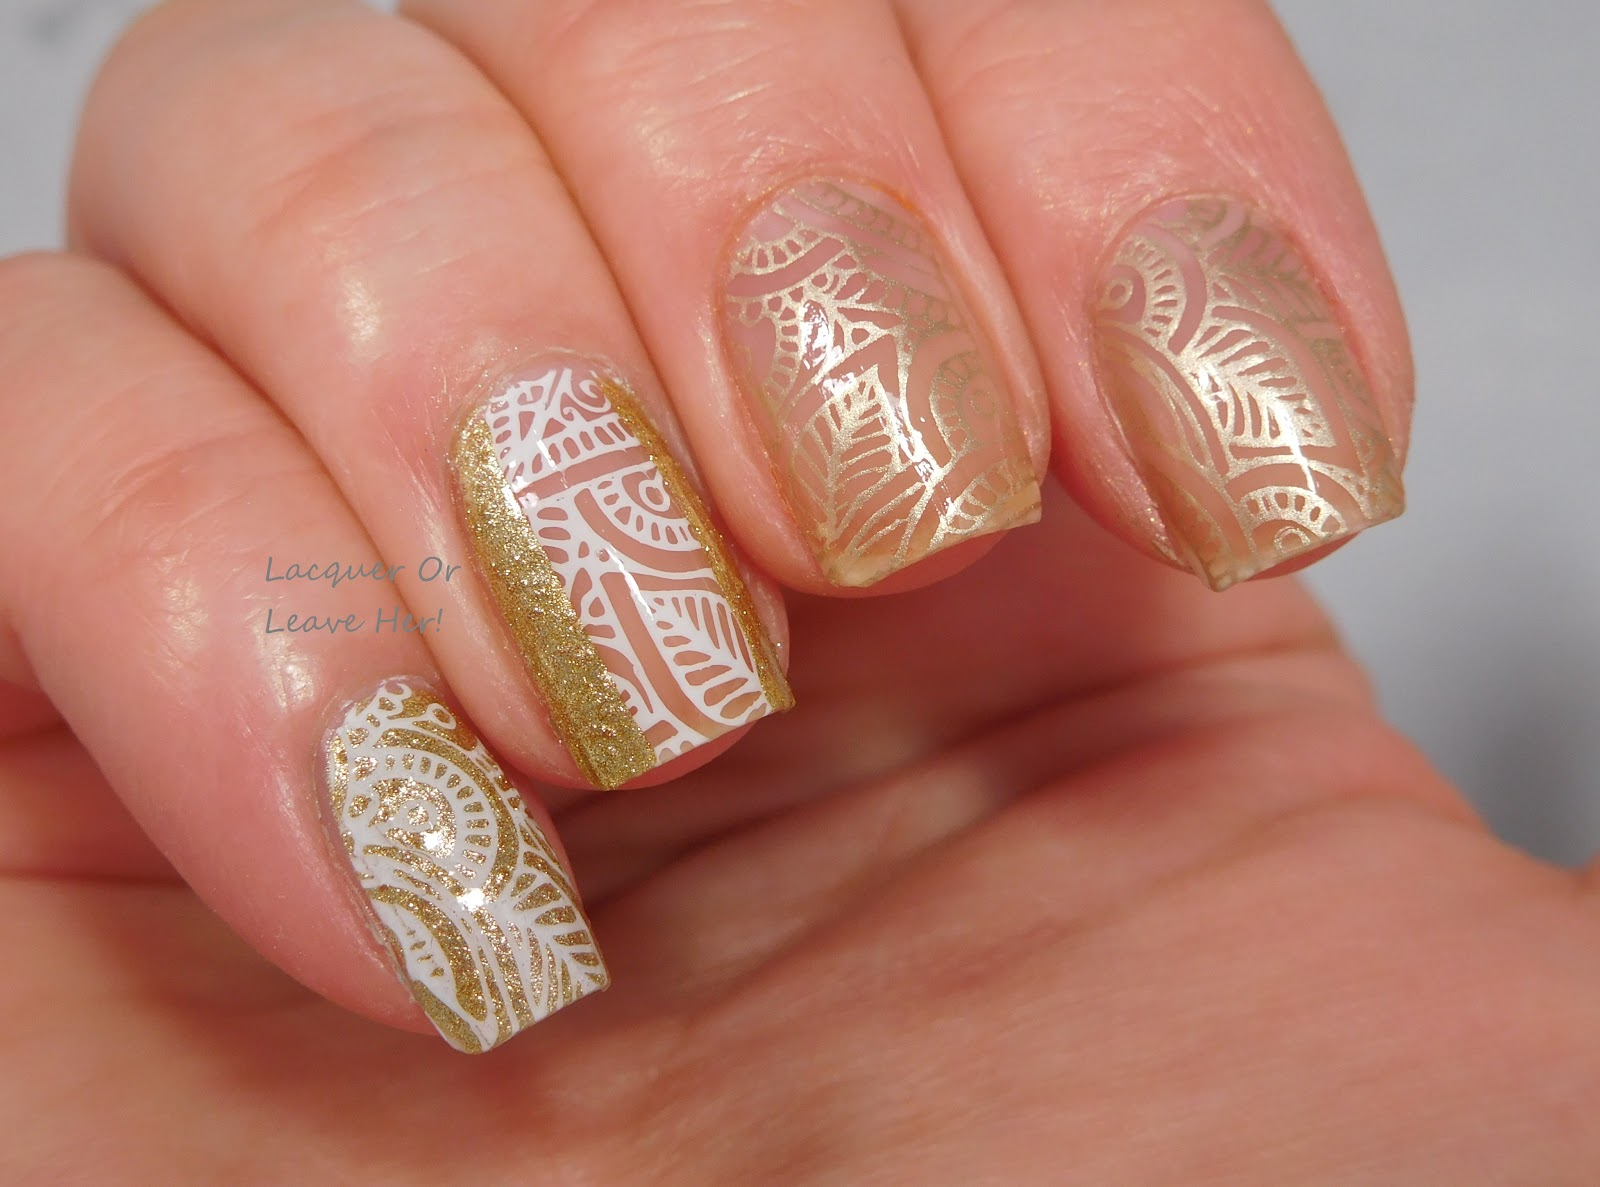 Lacquer Or Leave Her Review Winstonia Wisdom Of Henna Plate